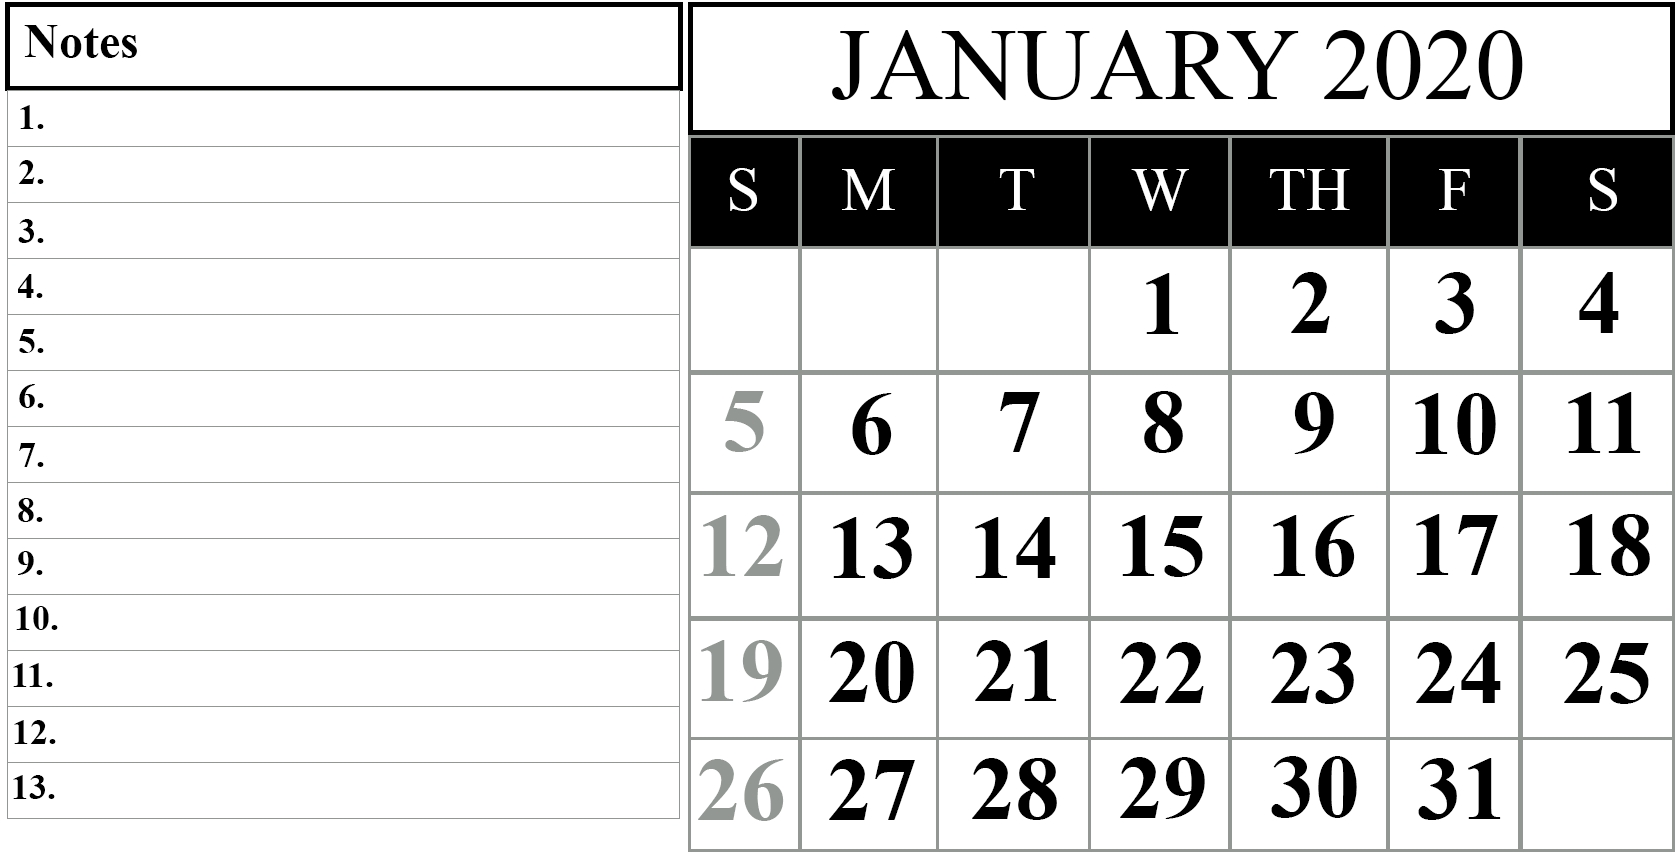 January 2020 Printable Calendar Template #2020Calendars-January 2020 Vertical Calendar